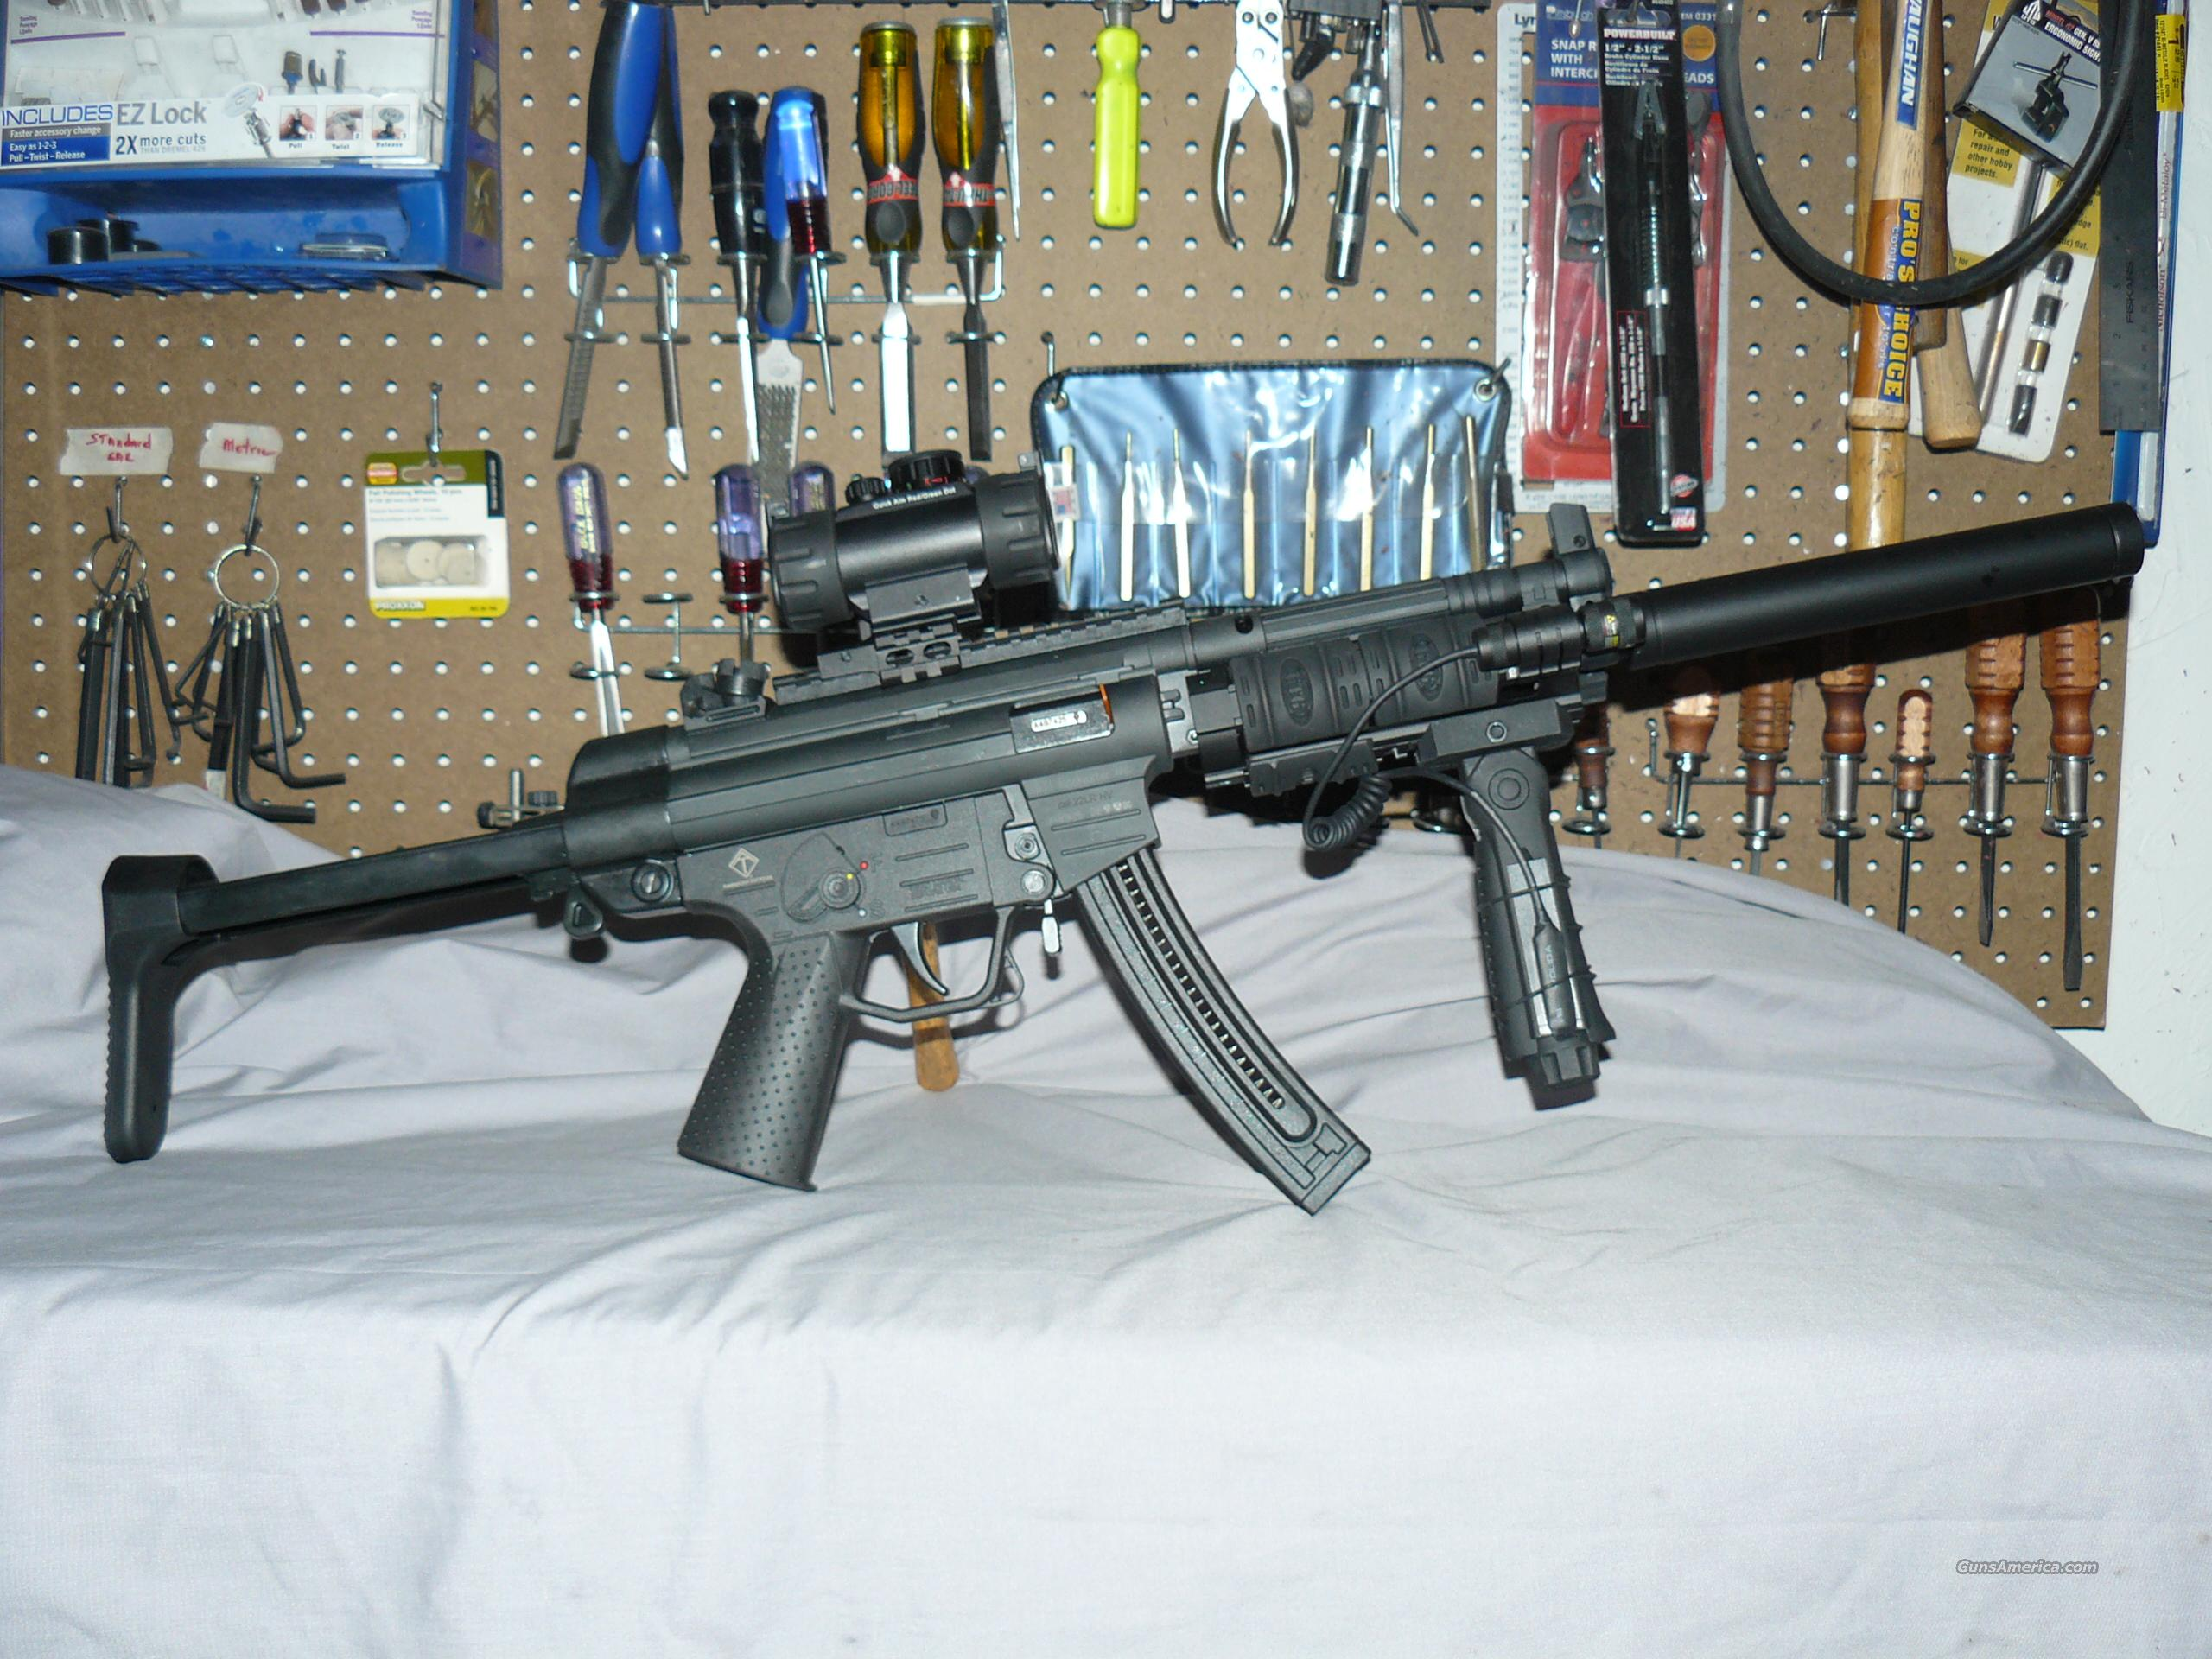 GSG-522 H&K MP5 22LR PACKAGE, RETRACTABLE STOCK, QUAD RAIL, LASER, R/G DOT  OPTICS